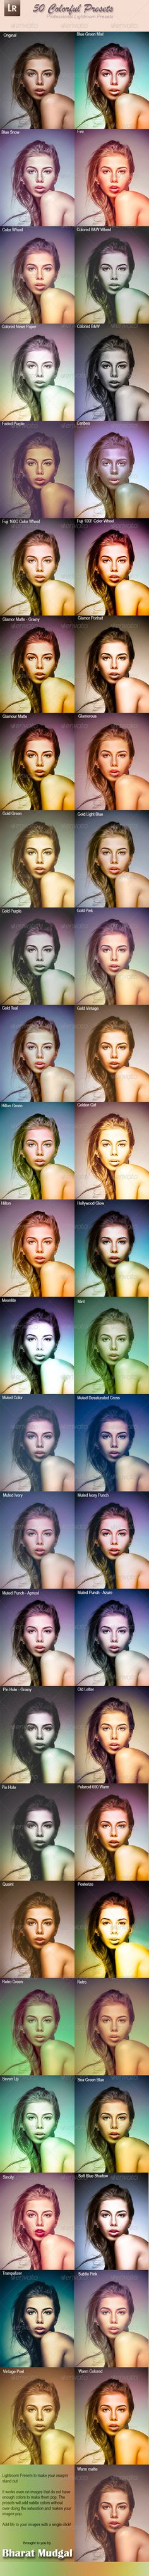 50 Colorful Presets - Lightroom Presets Add-ons Download - http://graphicriver.net/item/50-colorful-presets/6901869?WT.ac=portfolio&WT.seg_1=portfolio&WT.z_author=mudgalbharat